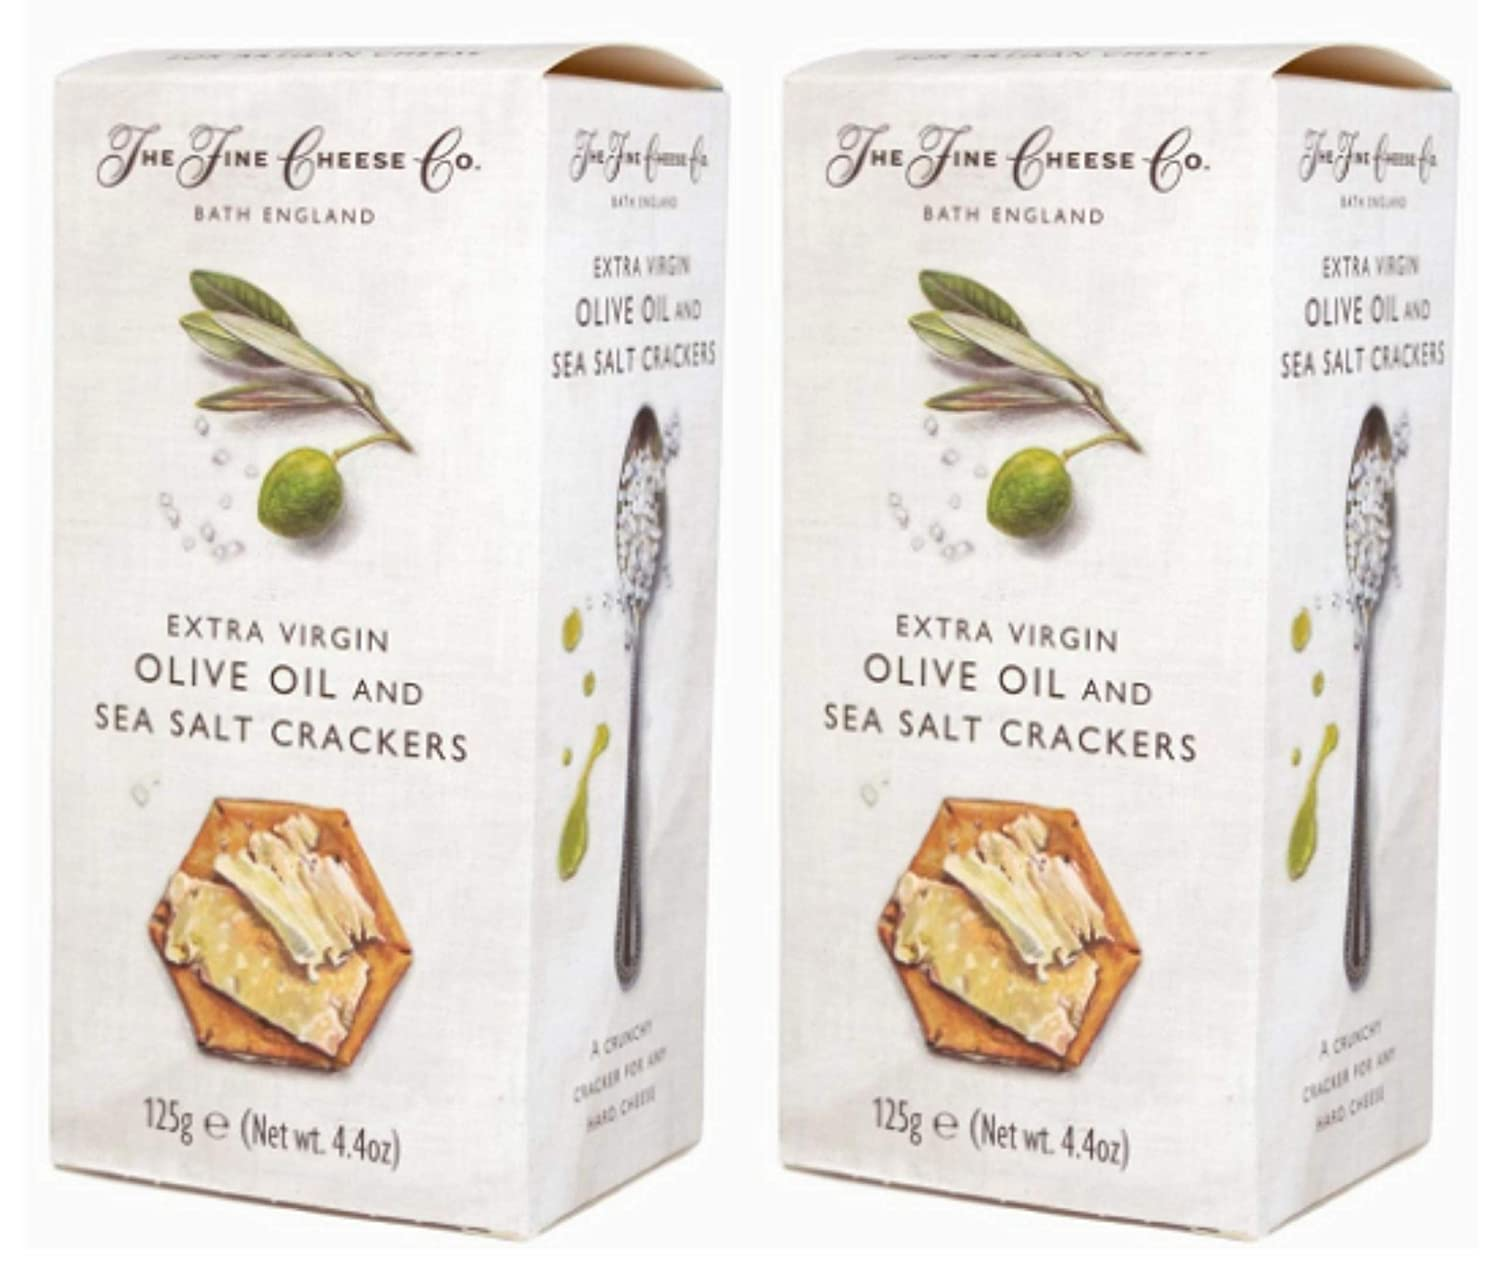 The Fine Cheese Co. Extra Virgin Oil Salt and cheap Sea Crackers Sales of SALE items from new works Olive